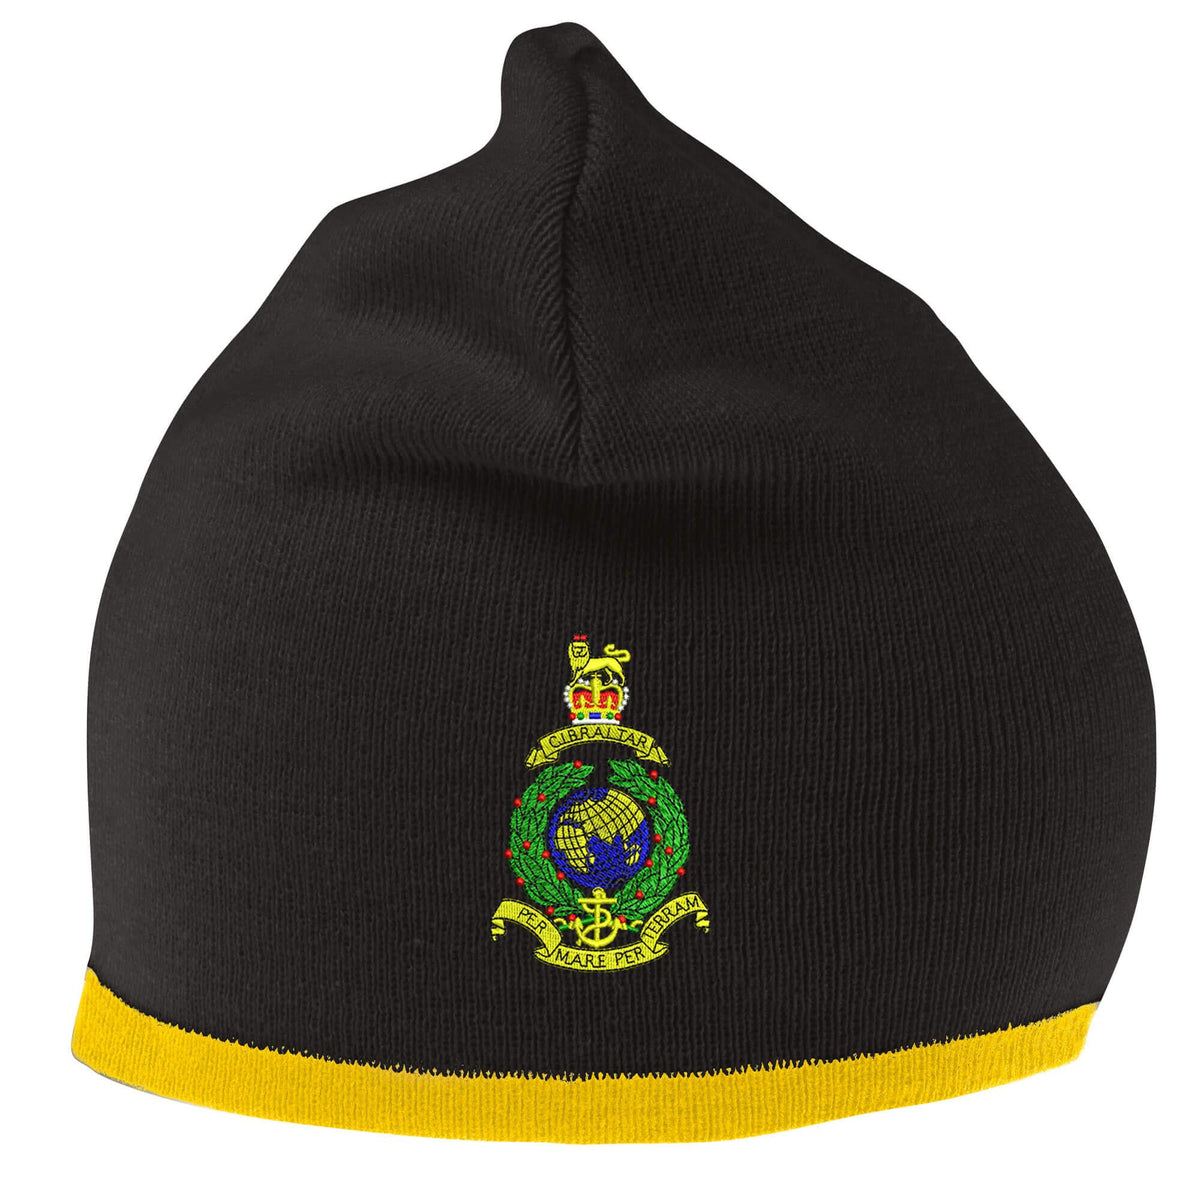 THE ROYAL REGIMENT OF WALES CAP BADGE PRINTED ON A BEANIE HAT CAP.